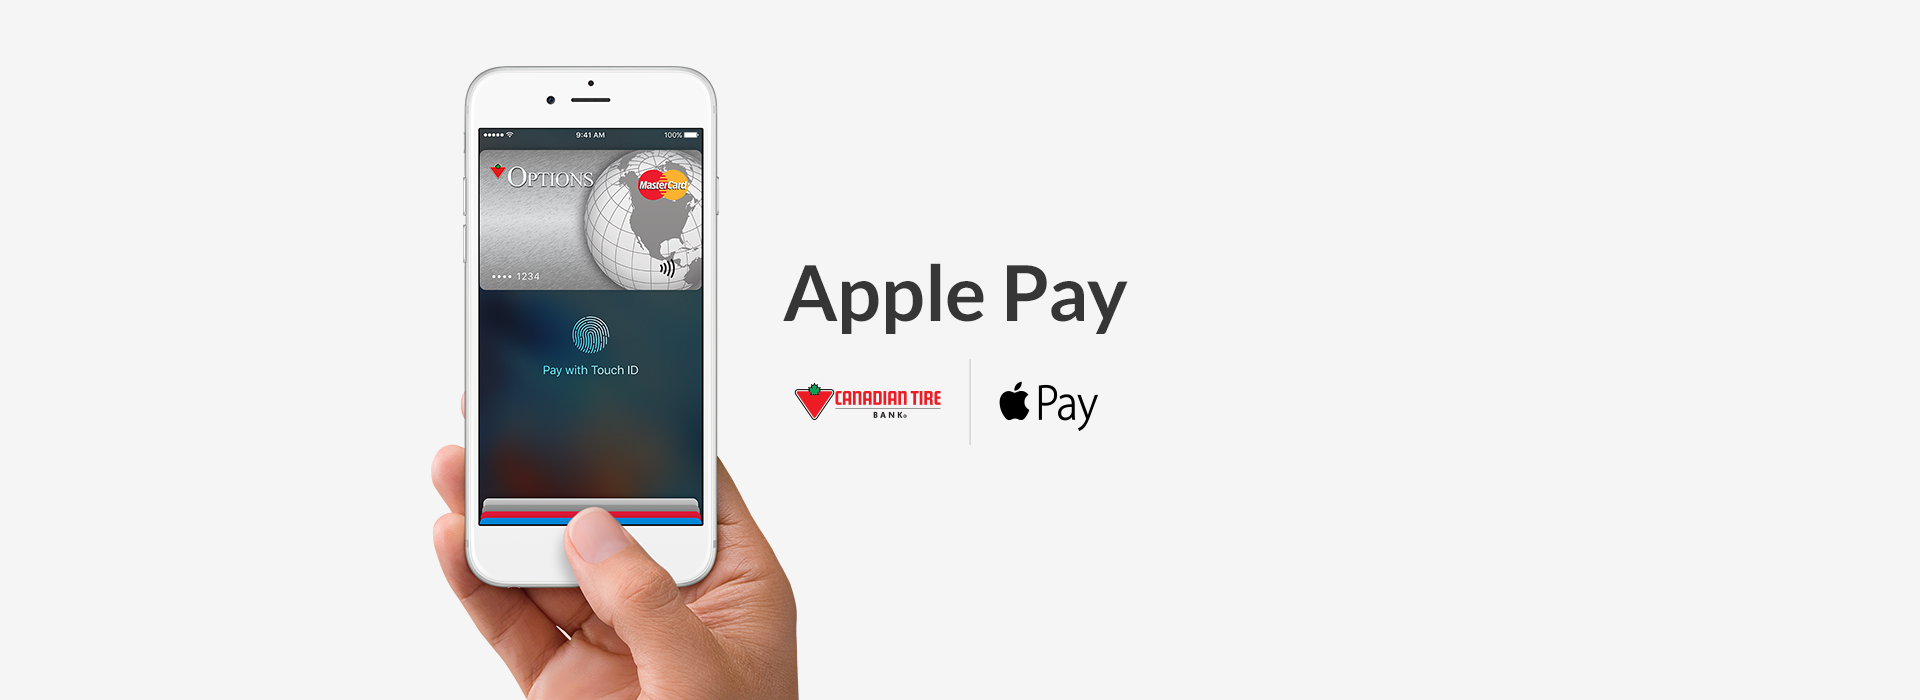 Apple pay infographic